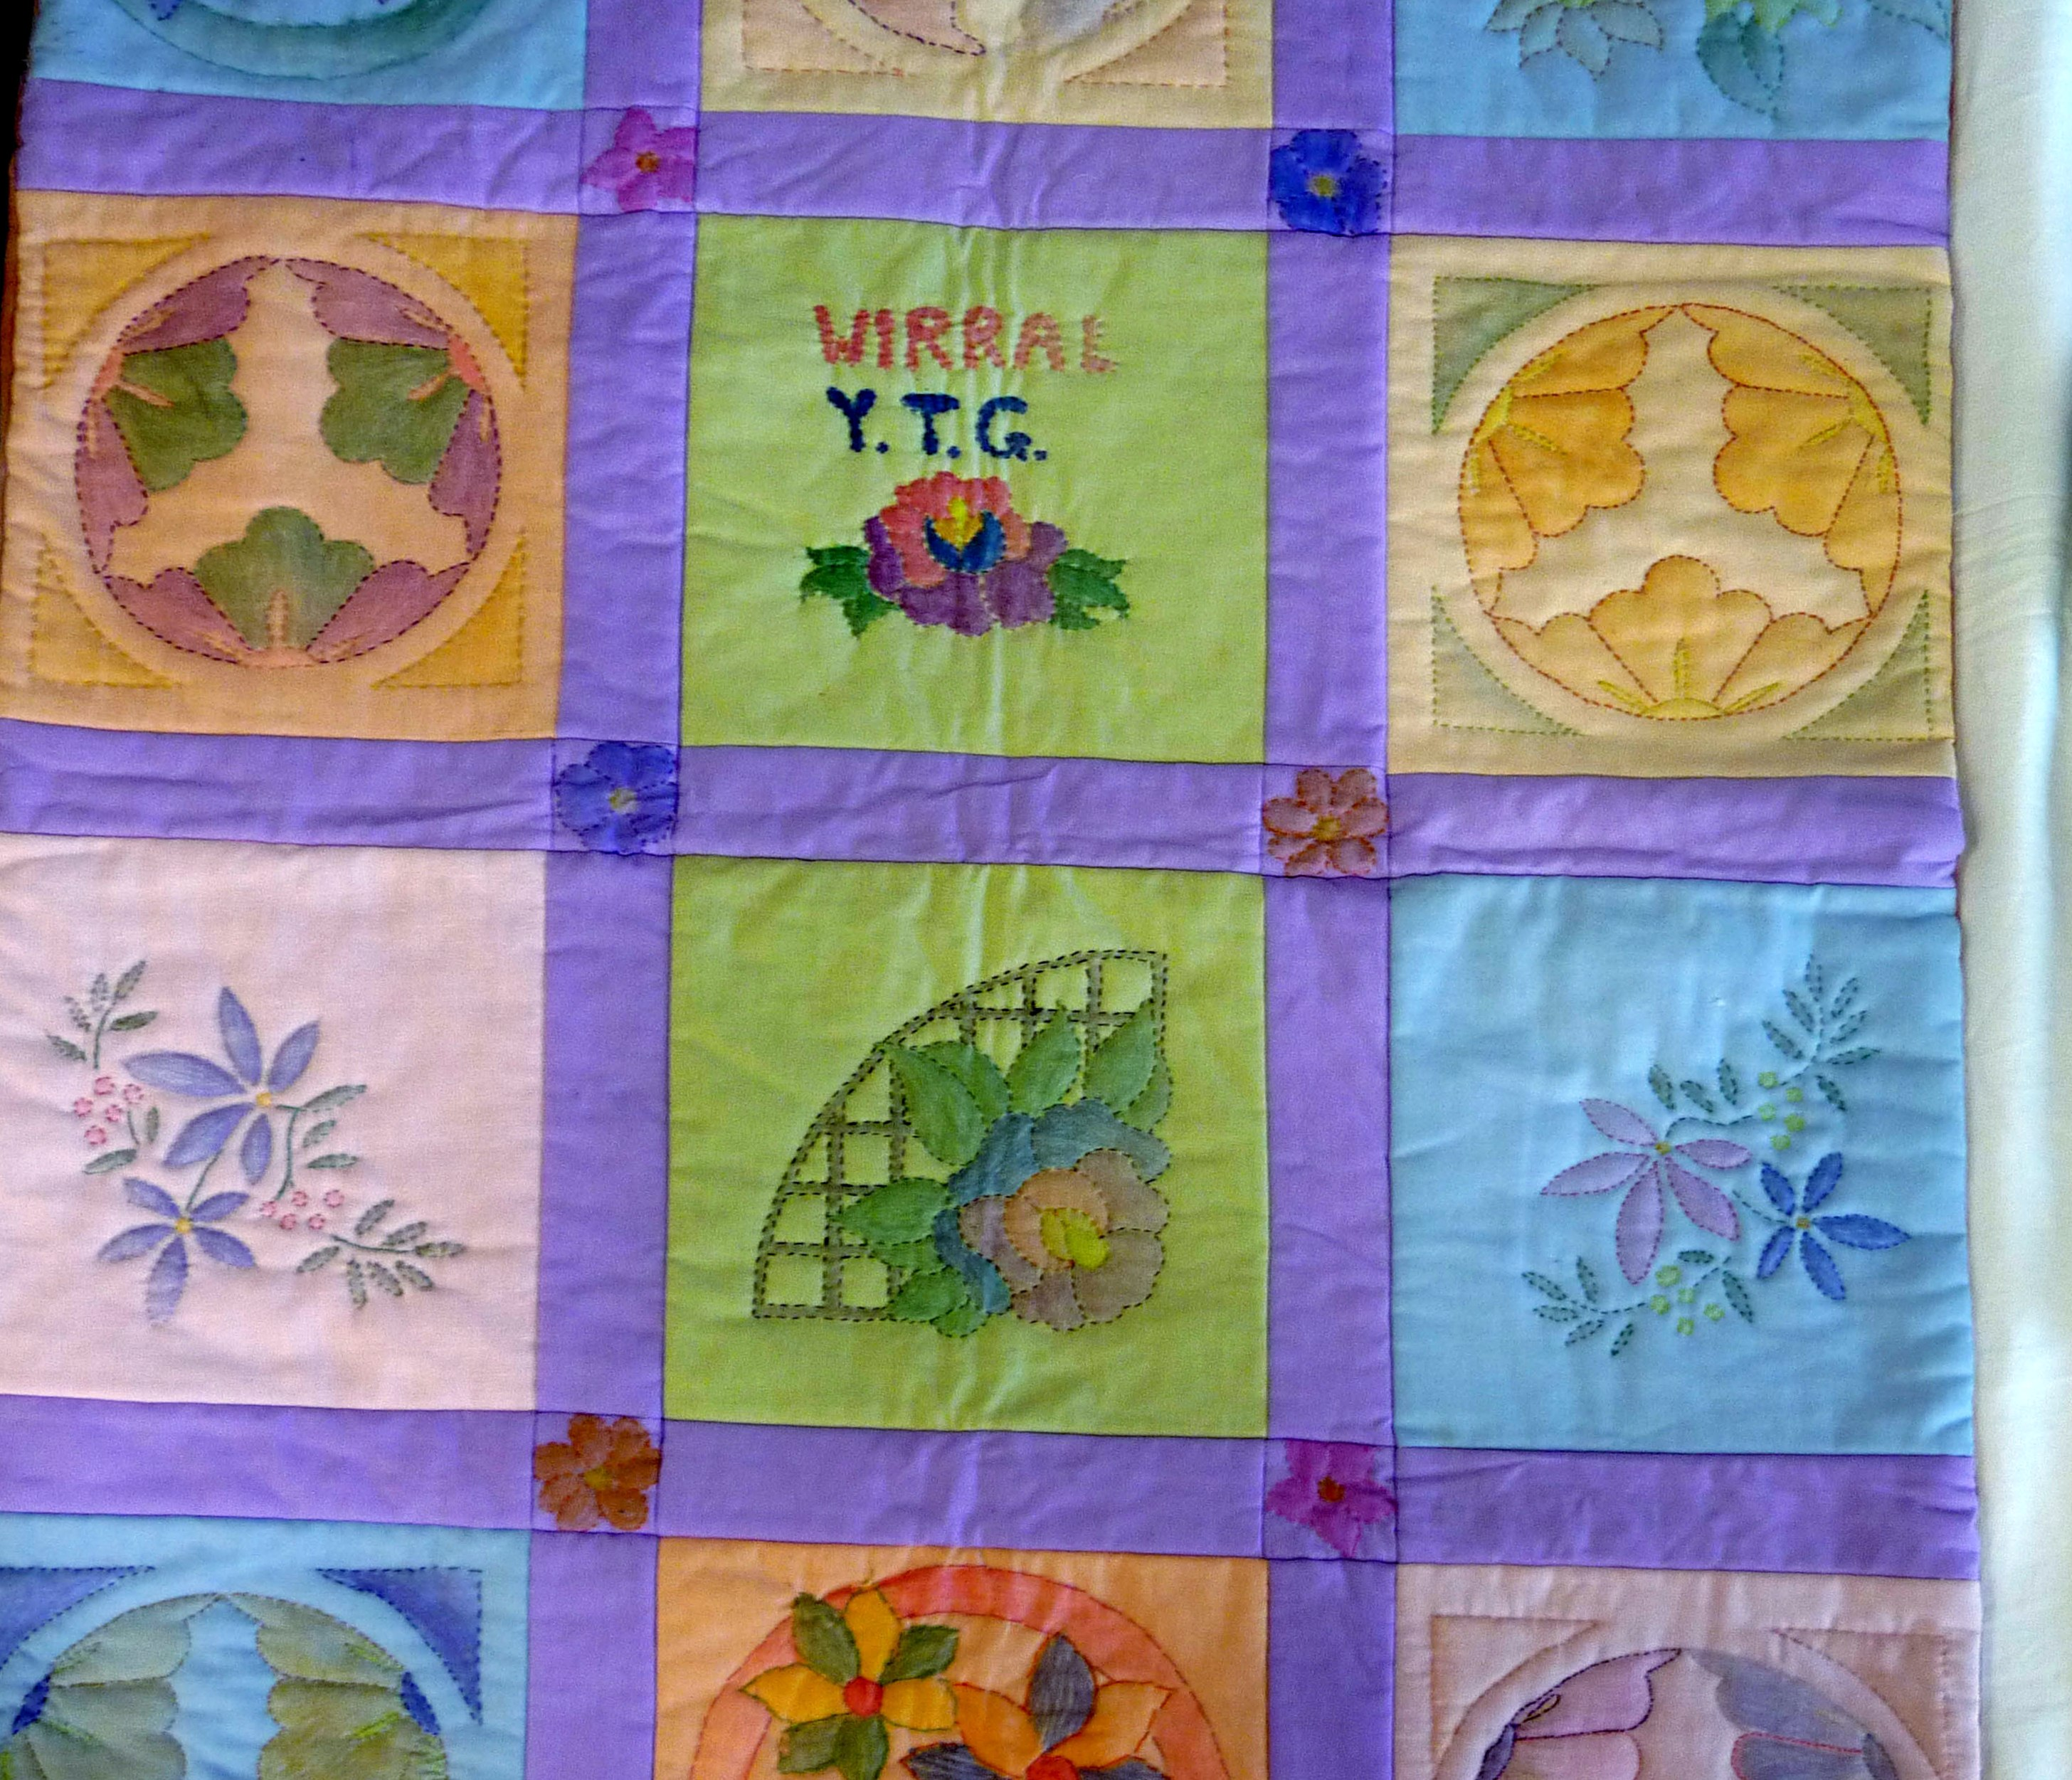 Shadow work quilt by Wirral YE